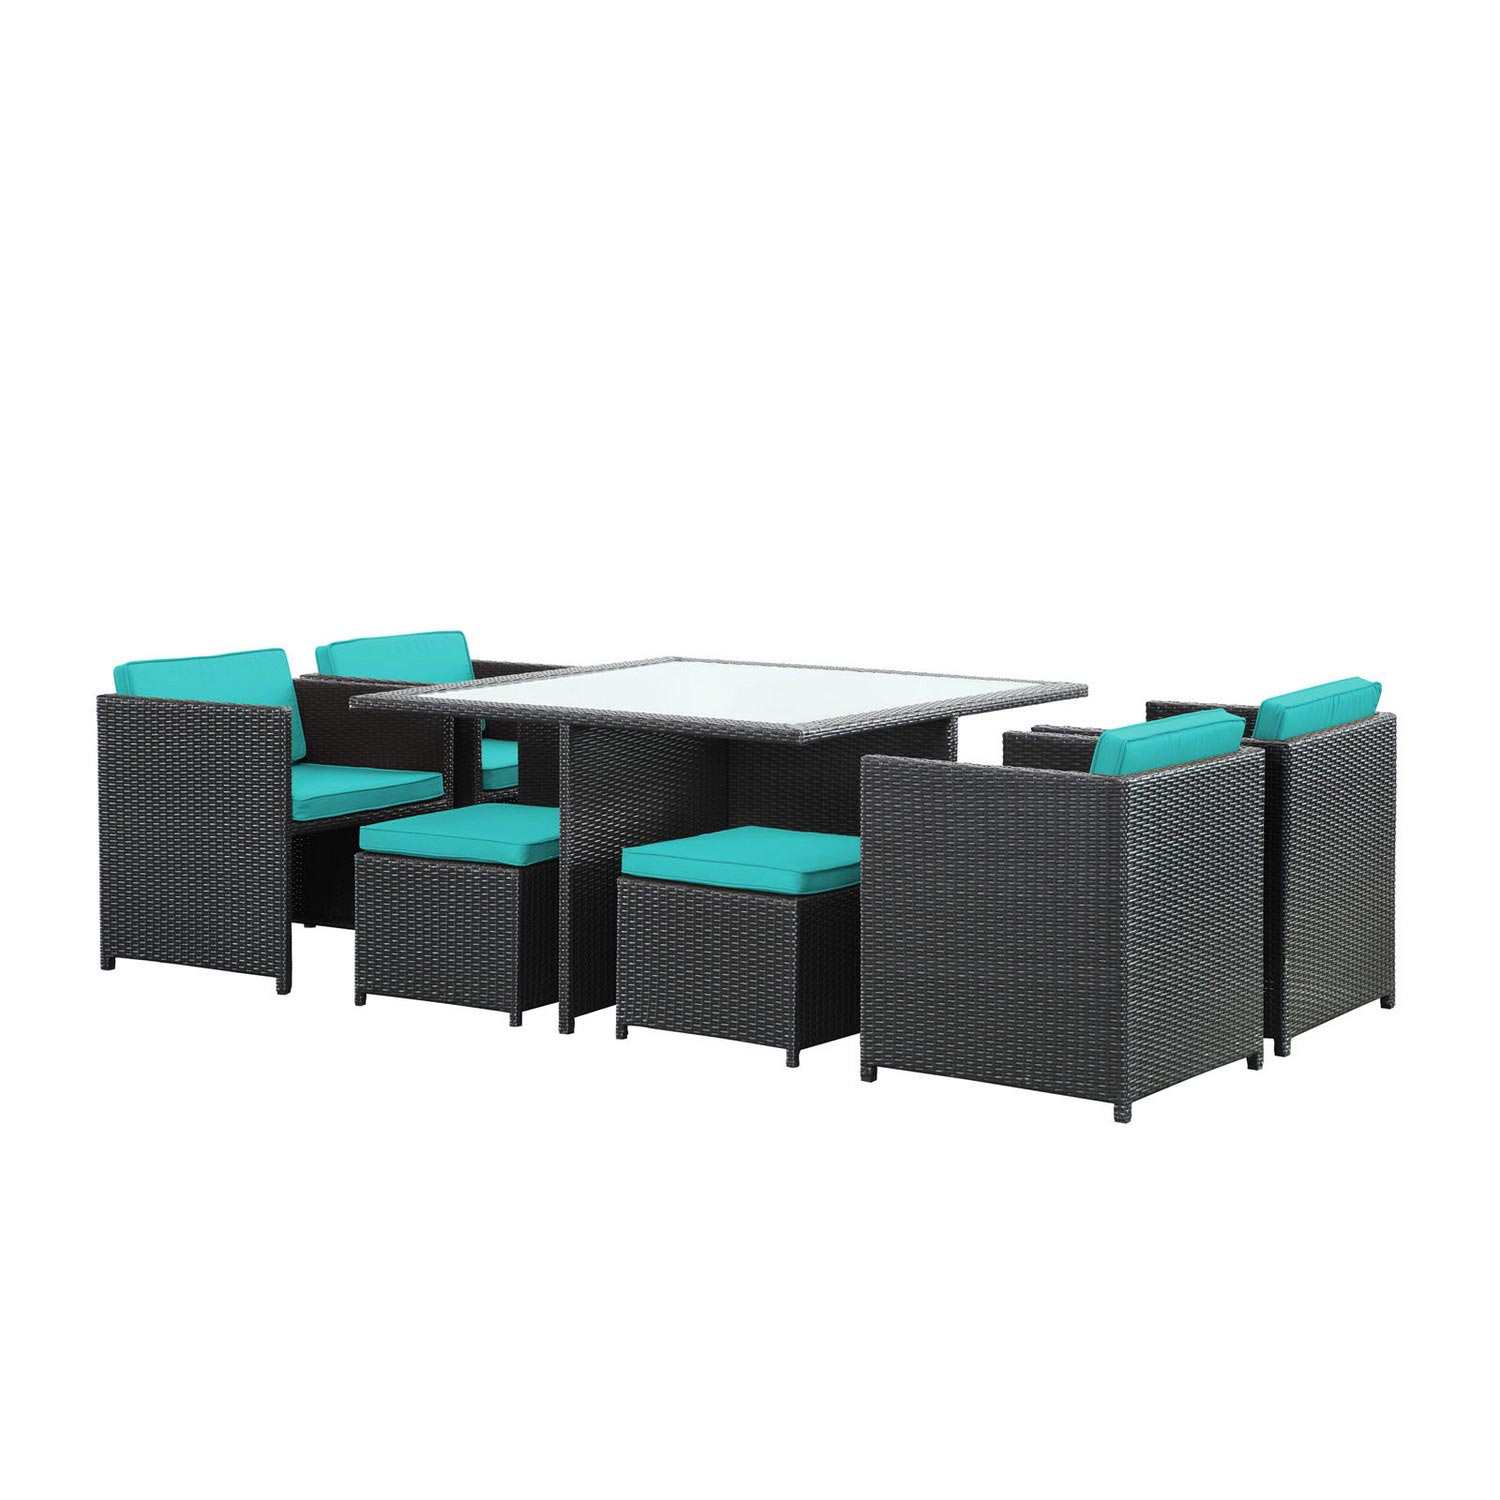 Modway Inverse 9 Piece Outdoor Patio Dining Set - Espresso/Turquoise